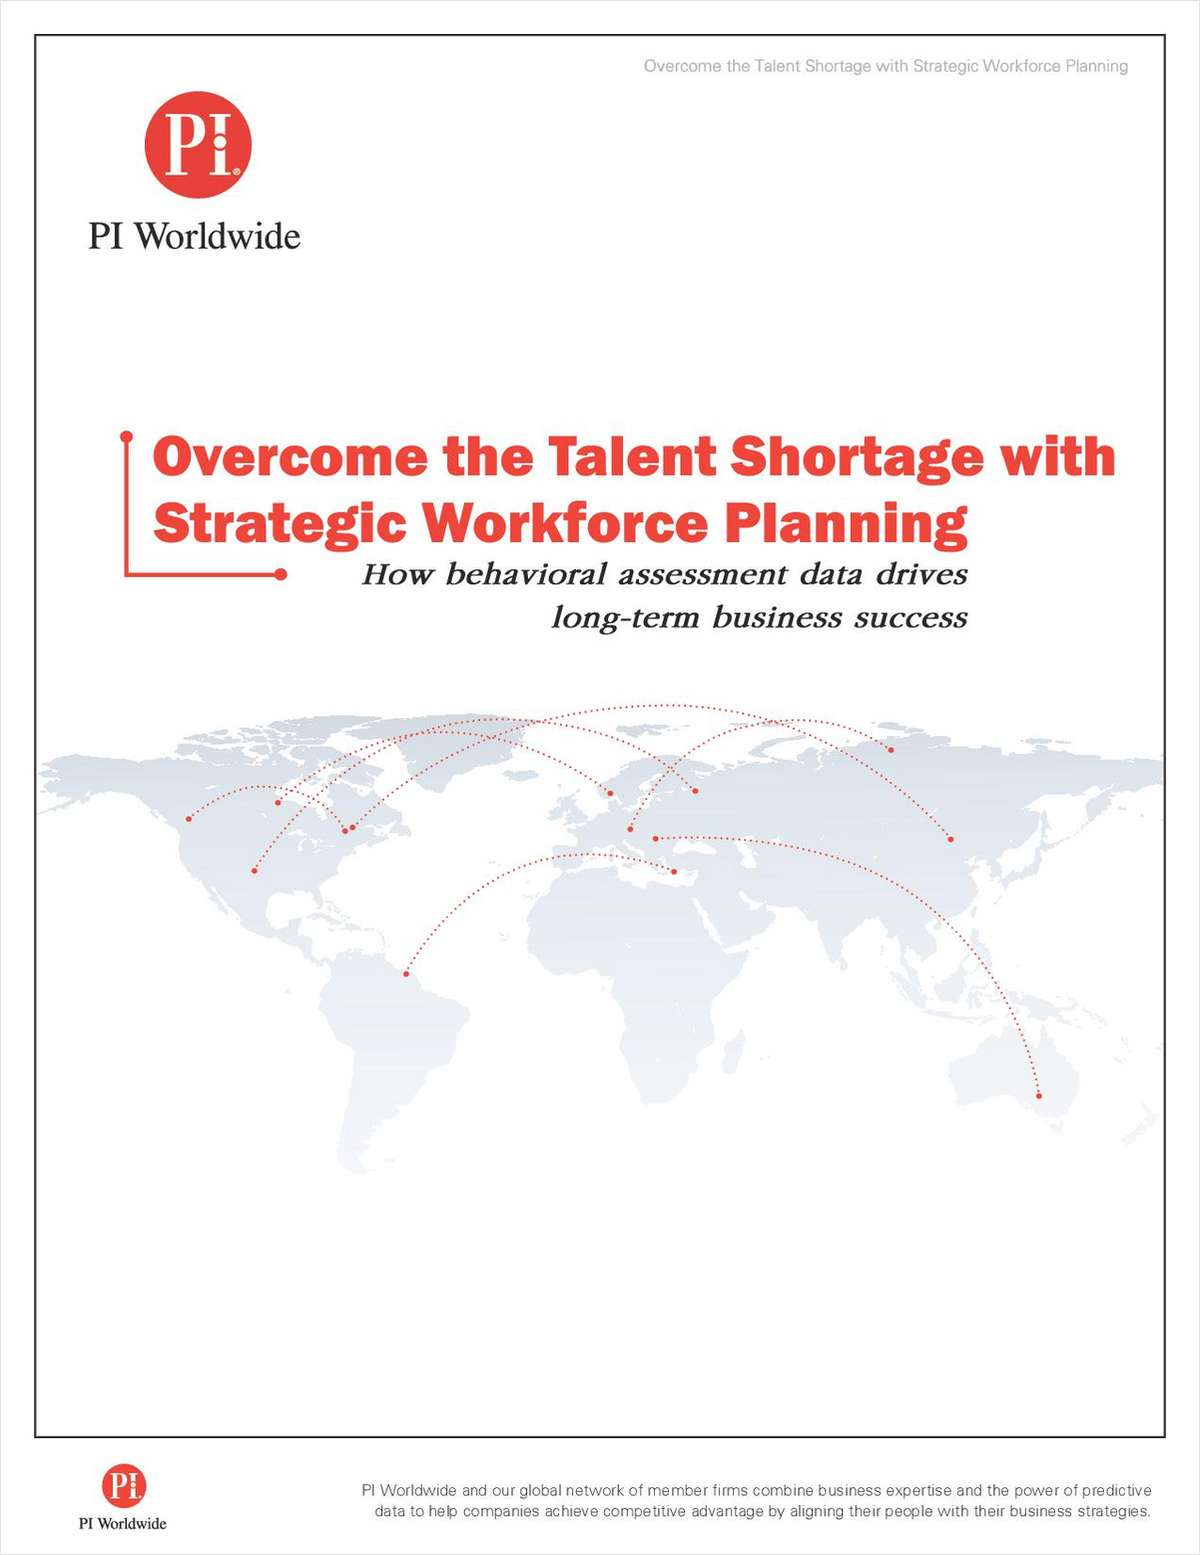 How to Overcome the Talent Shortage with Strategic Workforce Planning